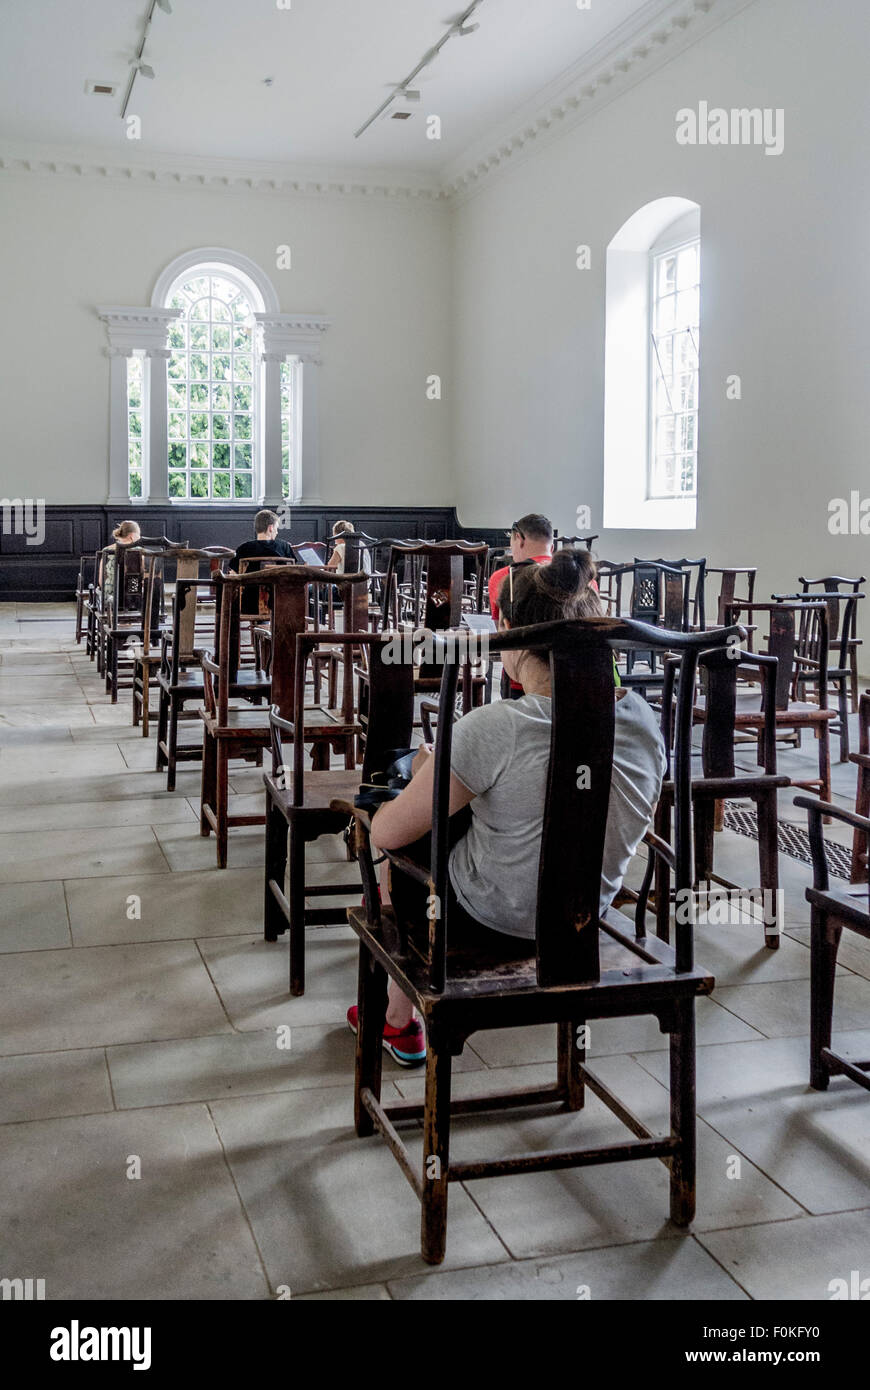 Yorkshire Sculpture Park. Ai Weiwei exhibition. Fairytale-1001 Chairs in the Chapel - Stock Image